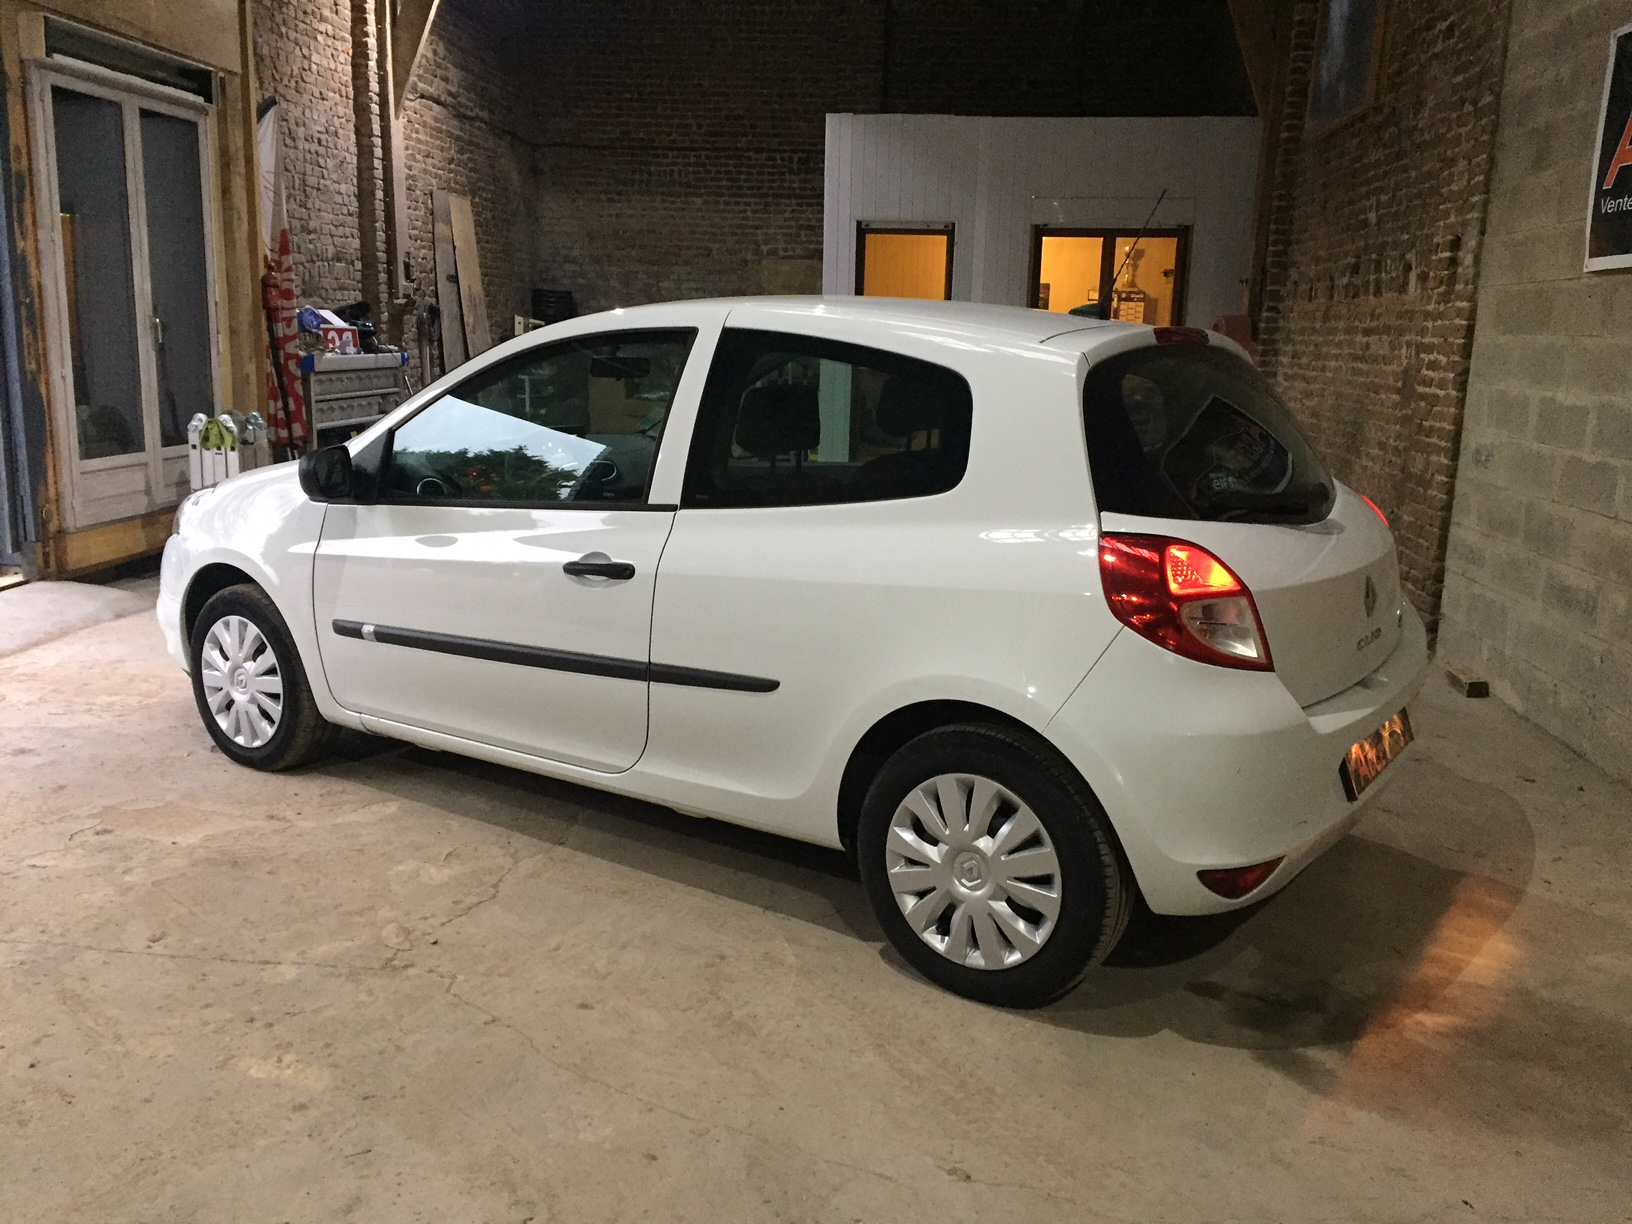 renault clio iii 1 5 dci 75 cv air societe 2 places acce auto. Black Bedroom Furniture Sets. Home Design Ideas